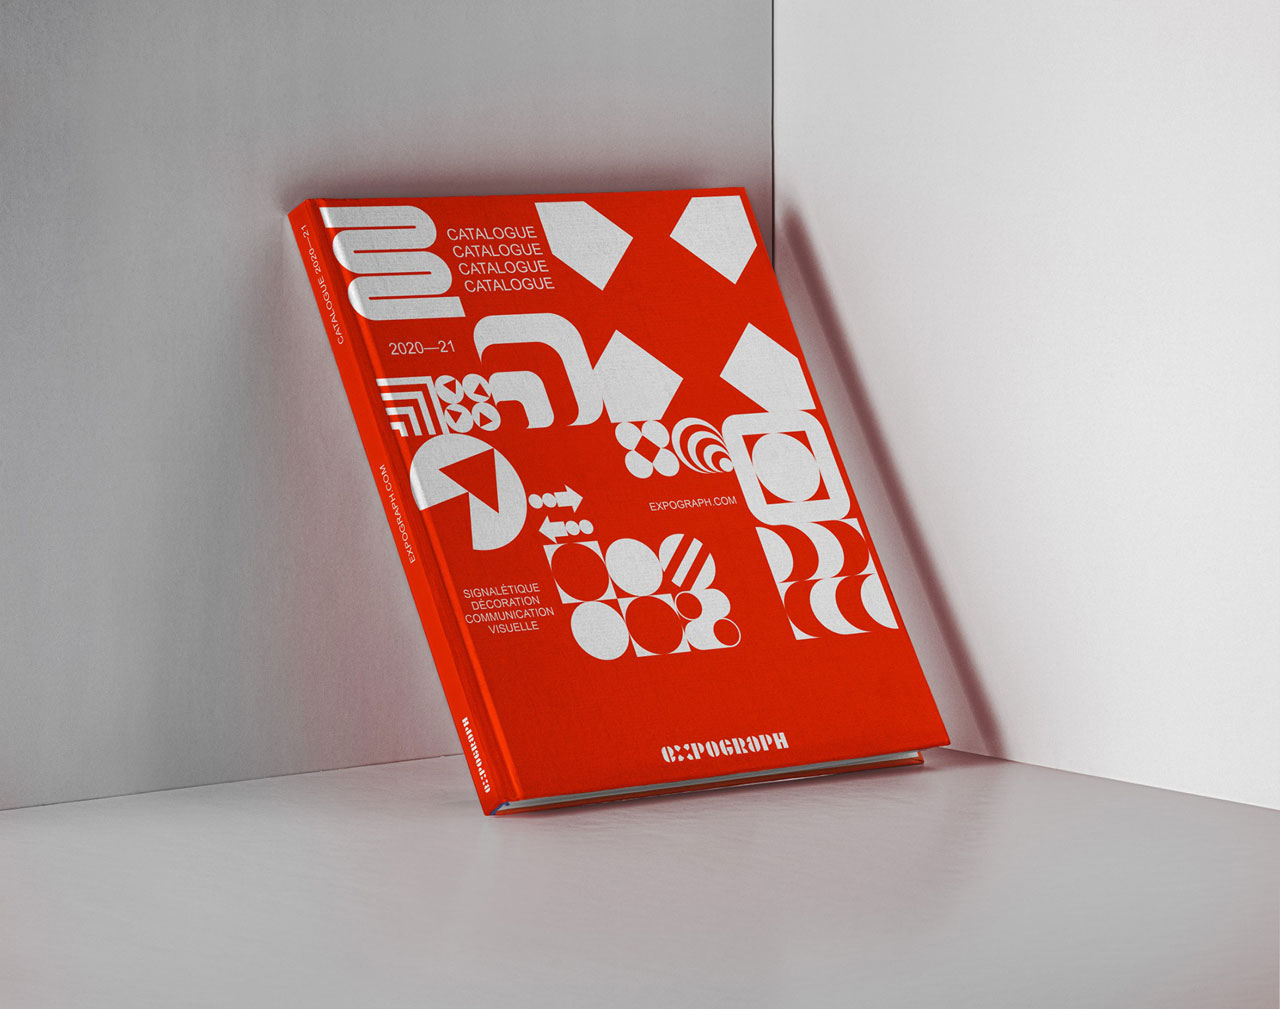 Expograph - brand identity and graphic design by Brand Brothers.